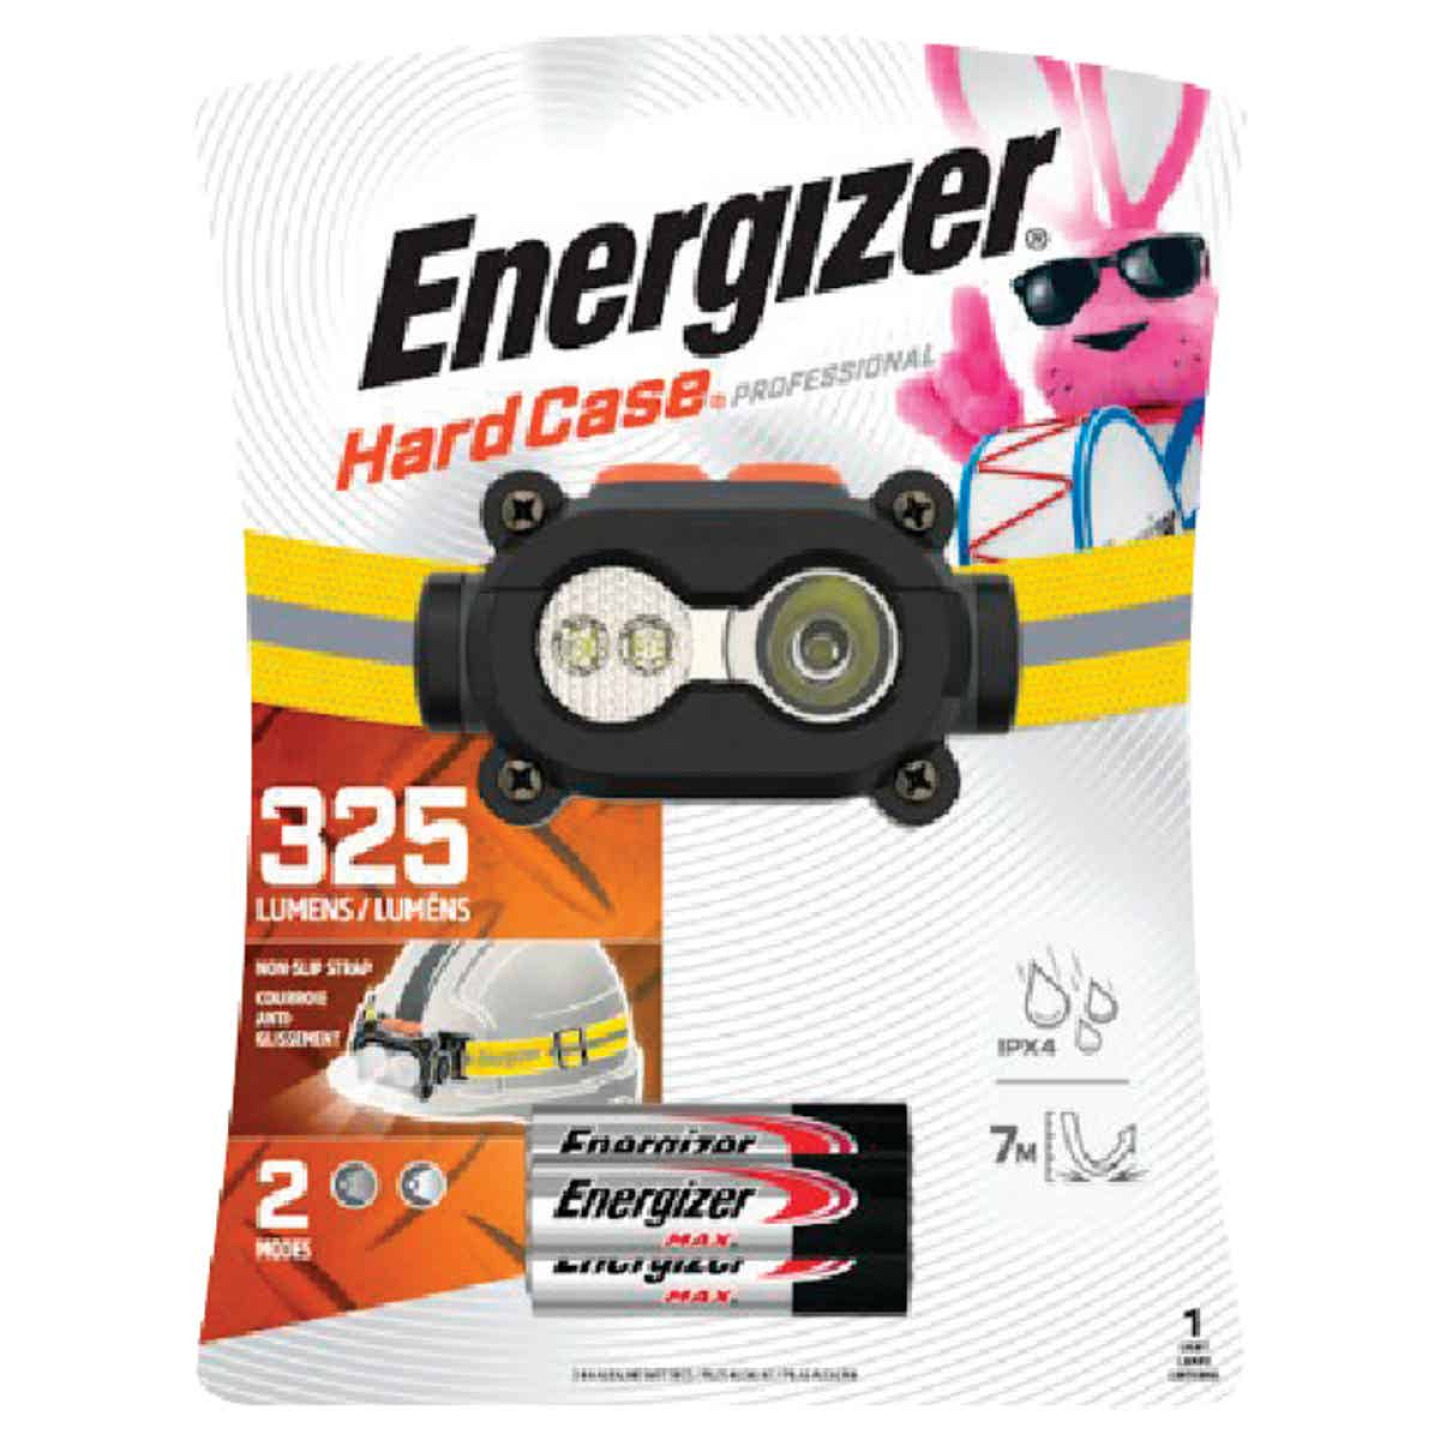 Energizer Hard Case Professional 325 Lm. LED 3AAA Headlamp Image 1